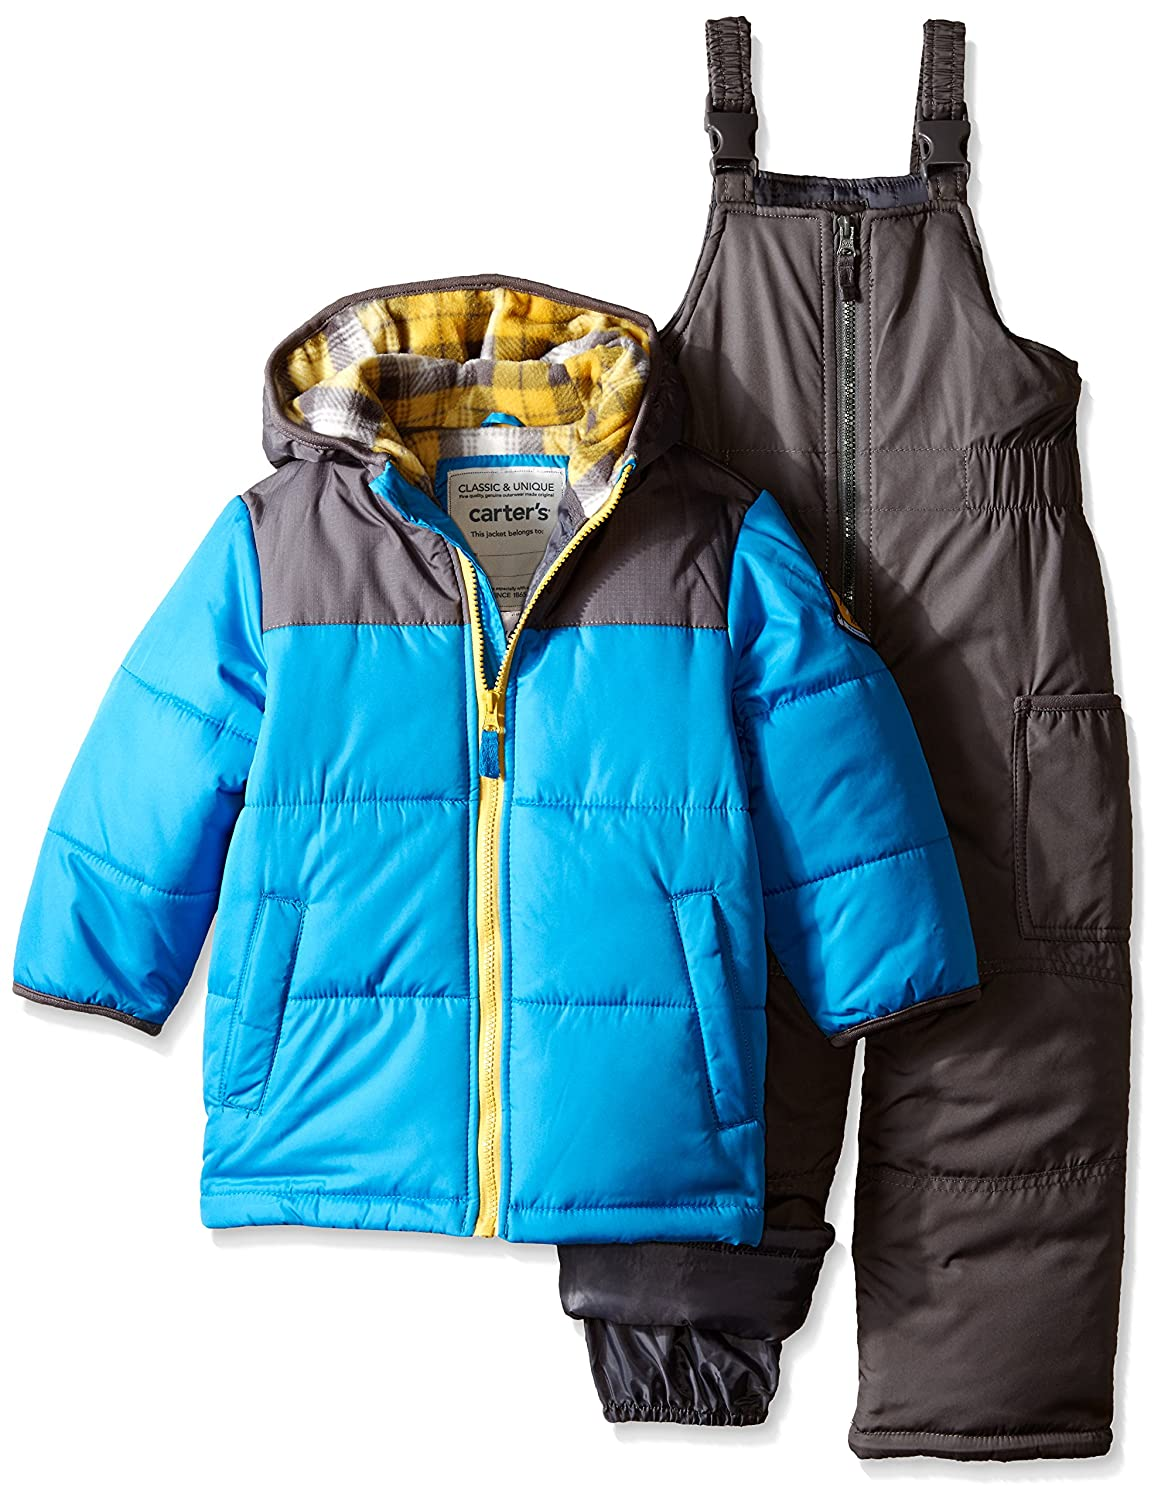 Carter's Little Boys' Puffer Coat Snowsuit, Blue, 5/6 Carter's 1221283